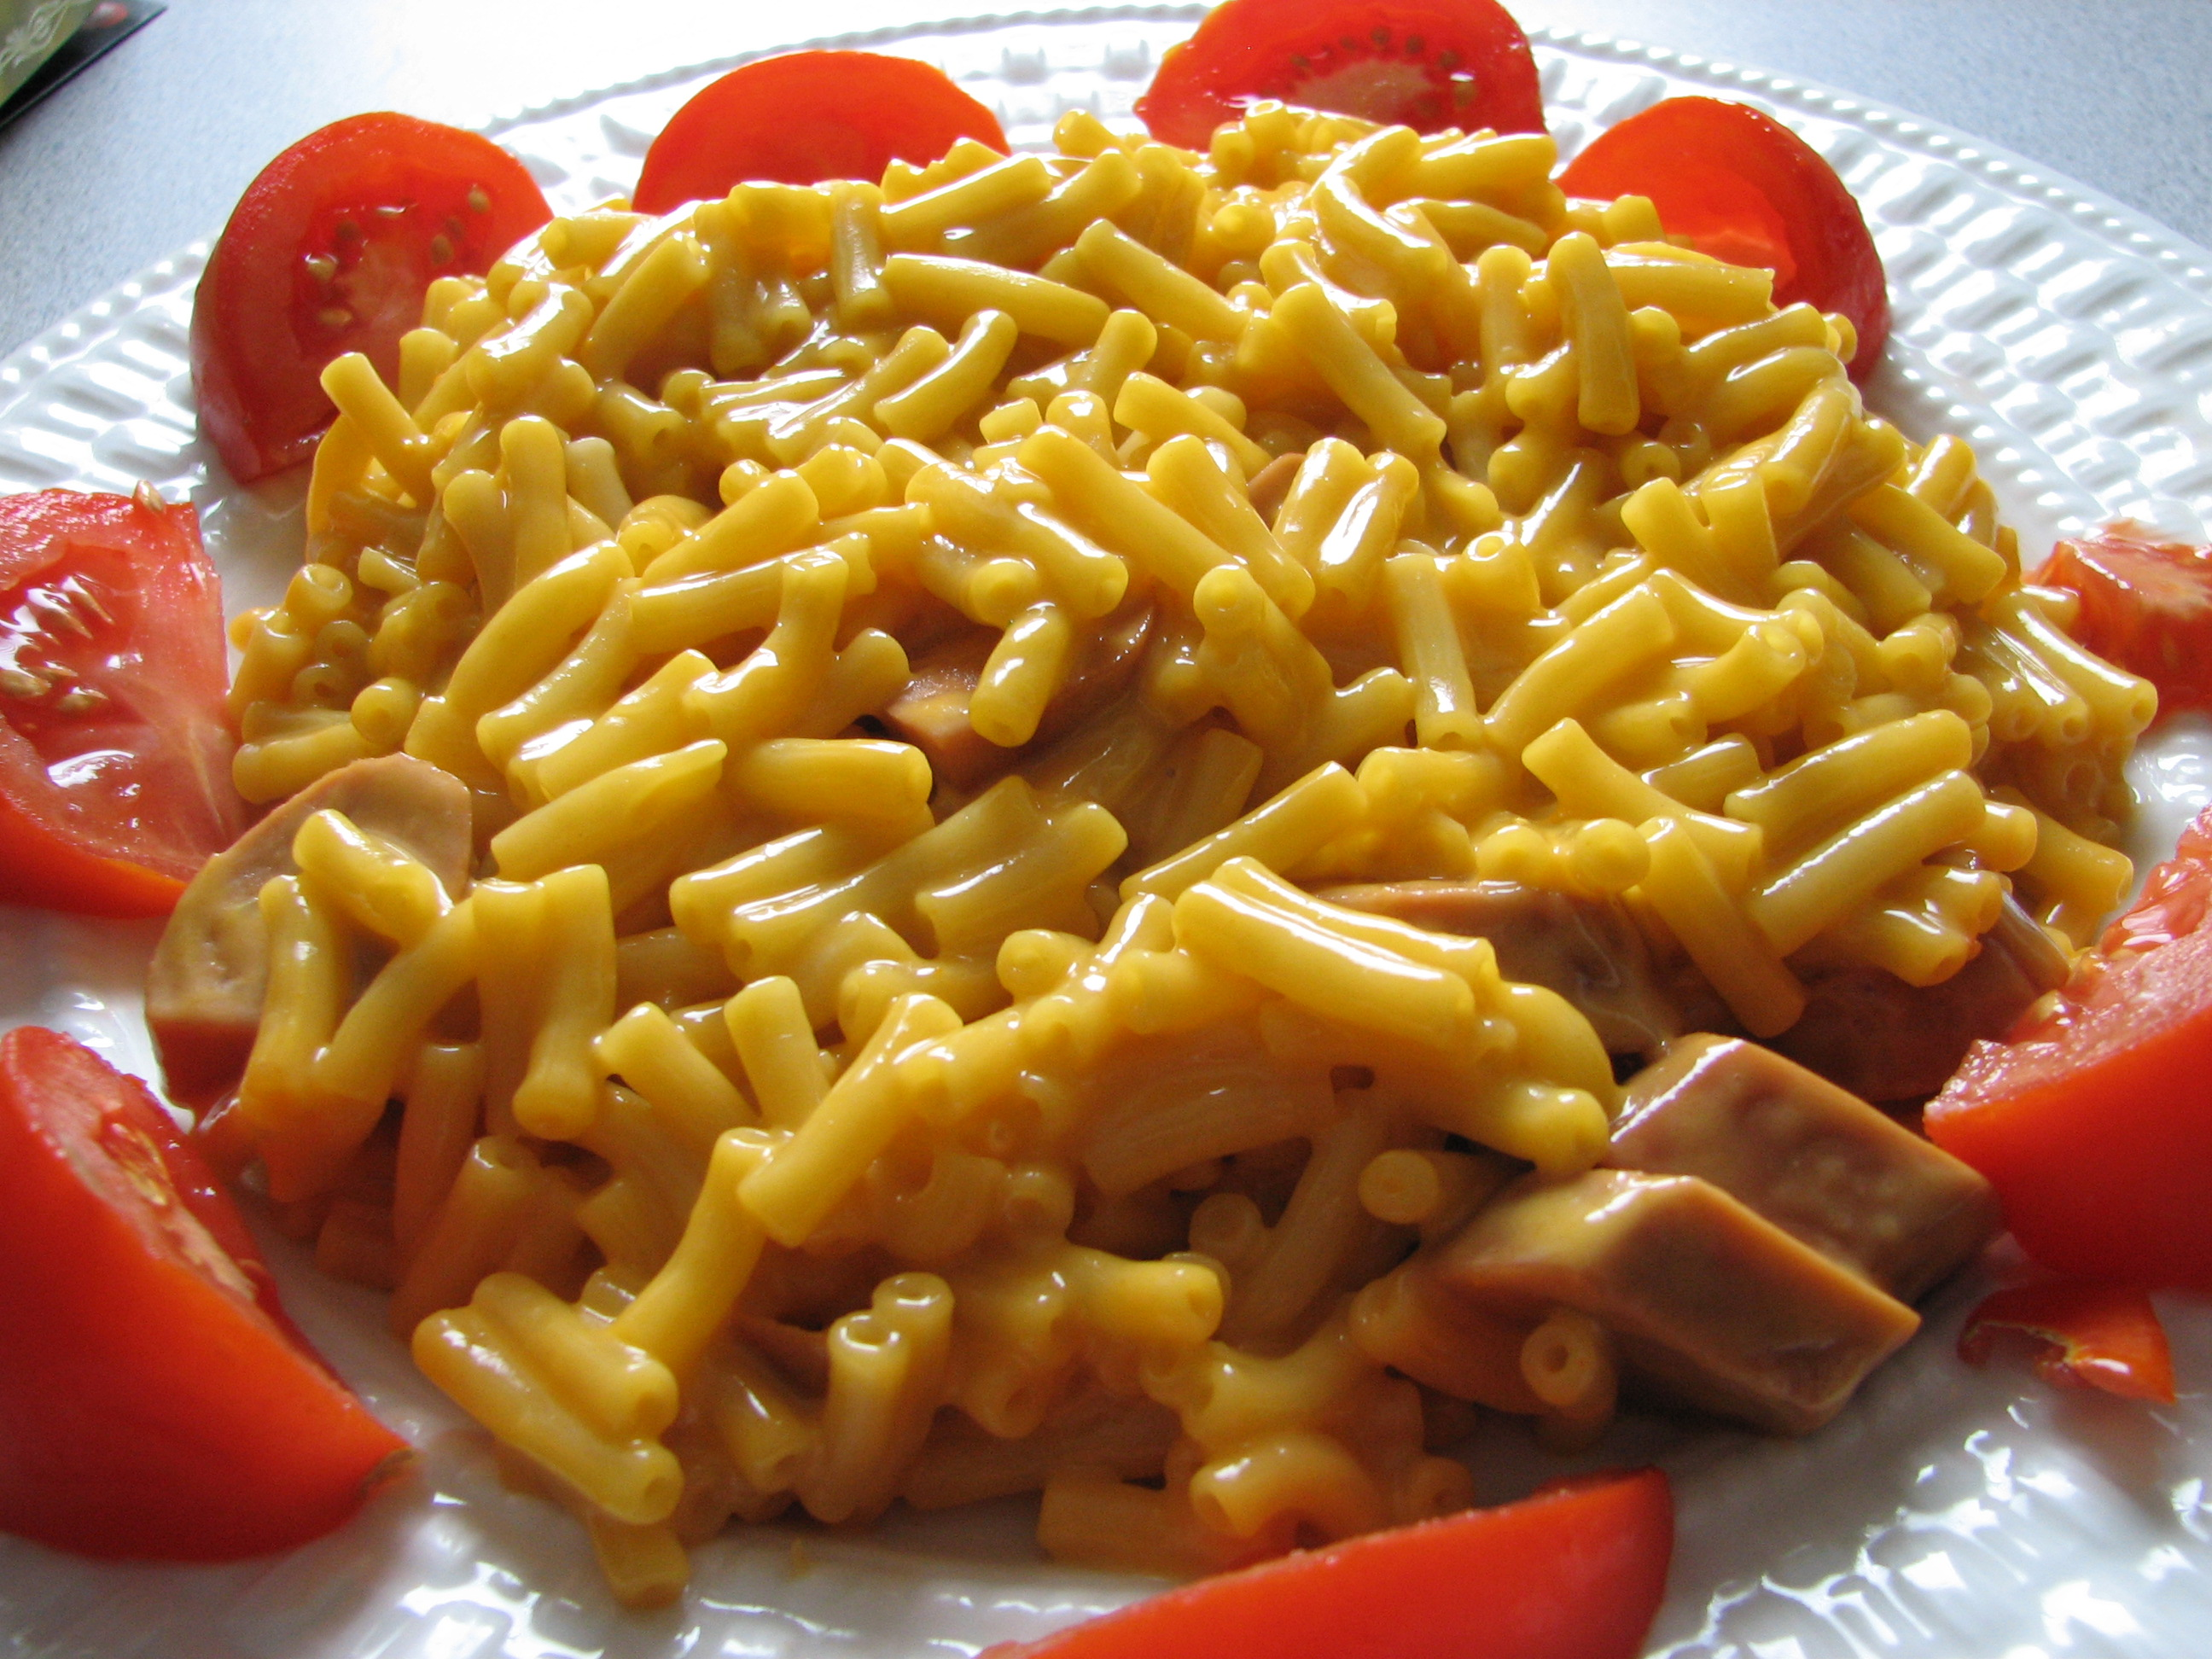 Kraft Dinner Hot Dogs